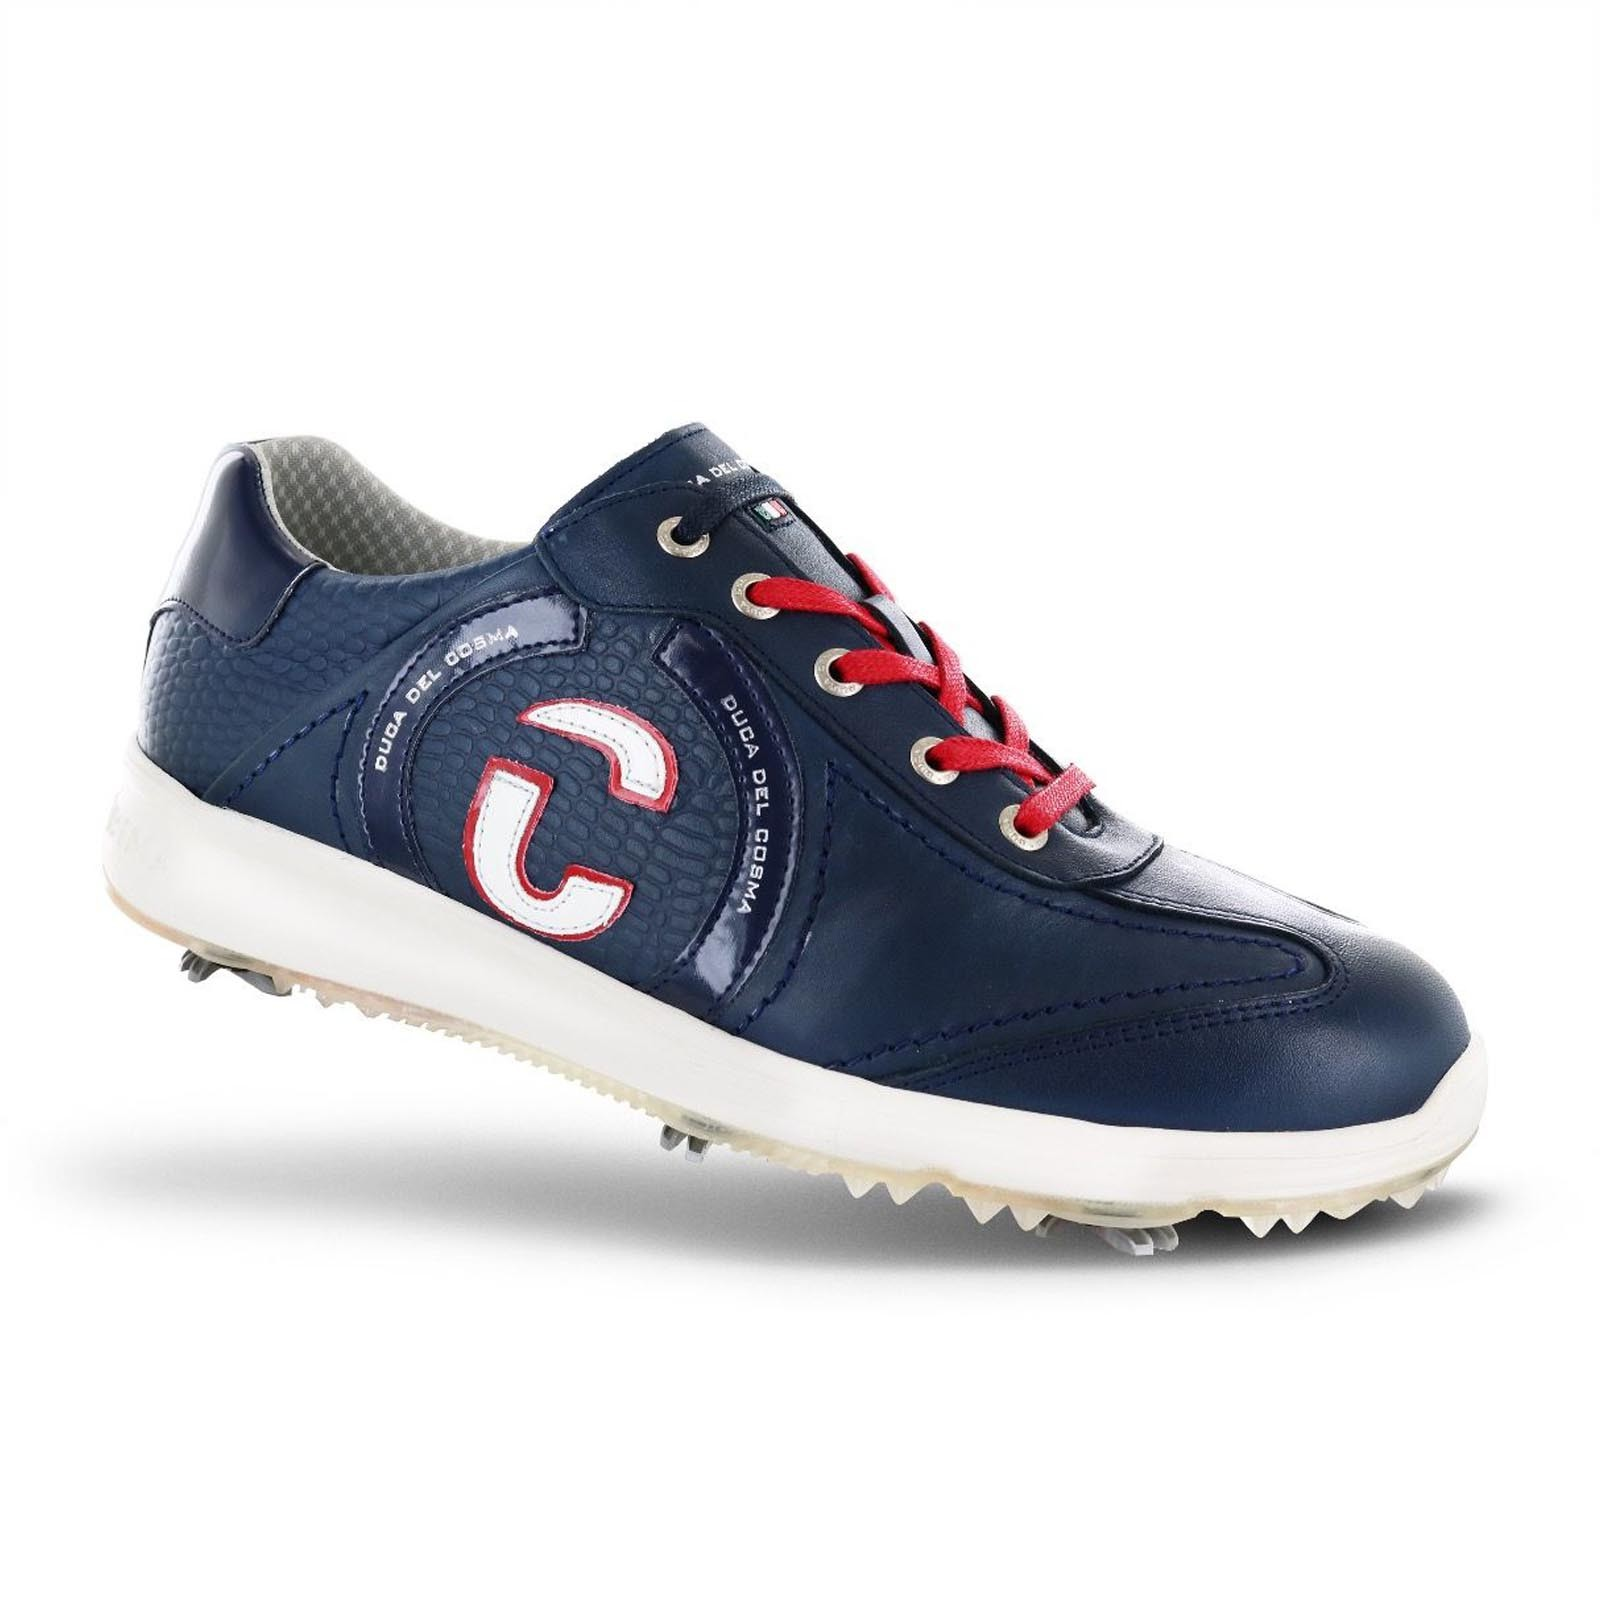 Duca del Cosma Masters Golf Shoes